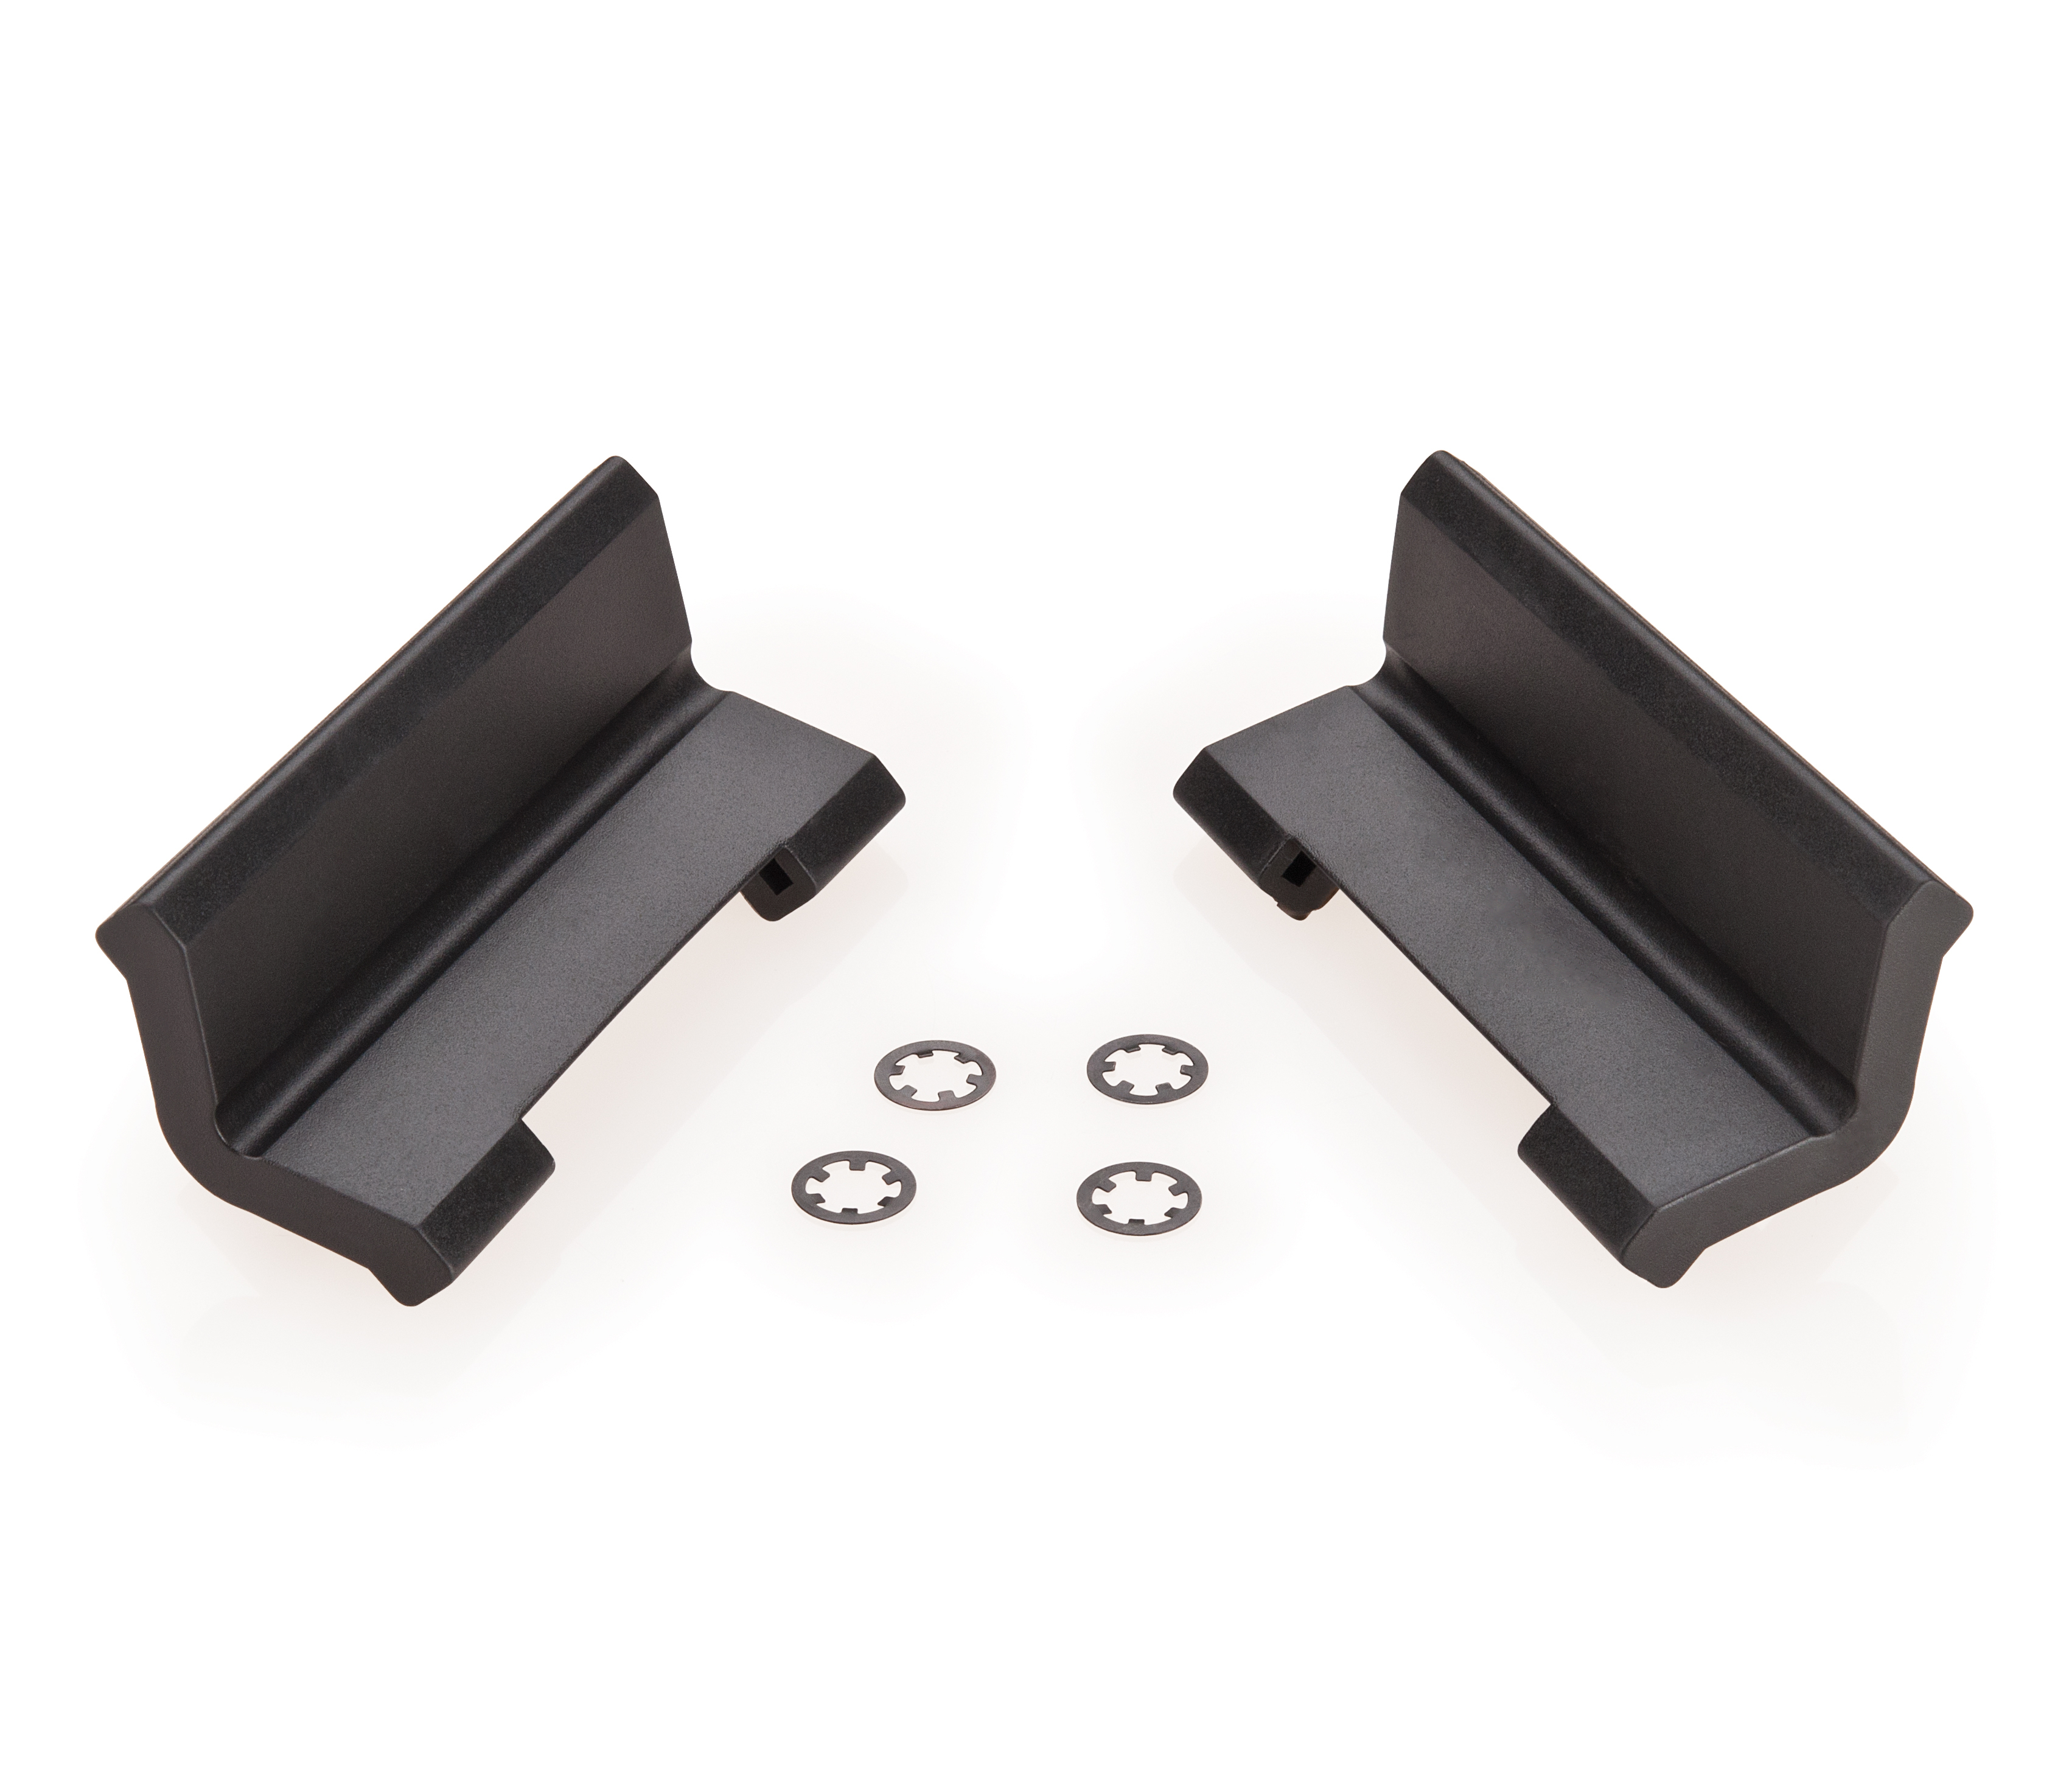 The Park Tool 1259 Replacement Jaw Covers